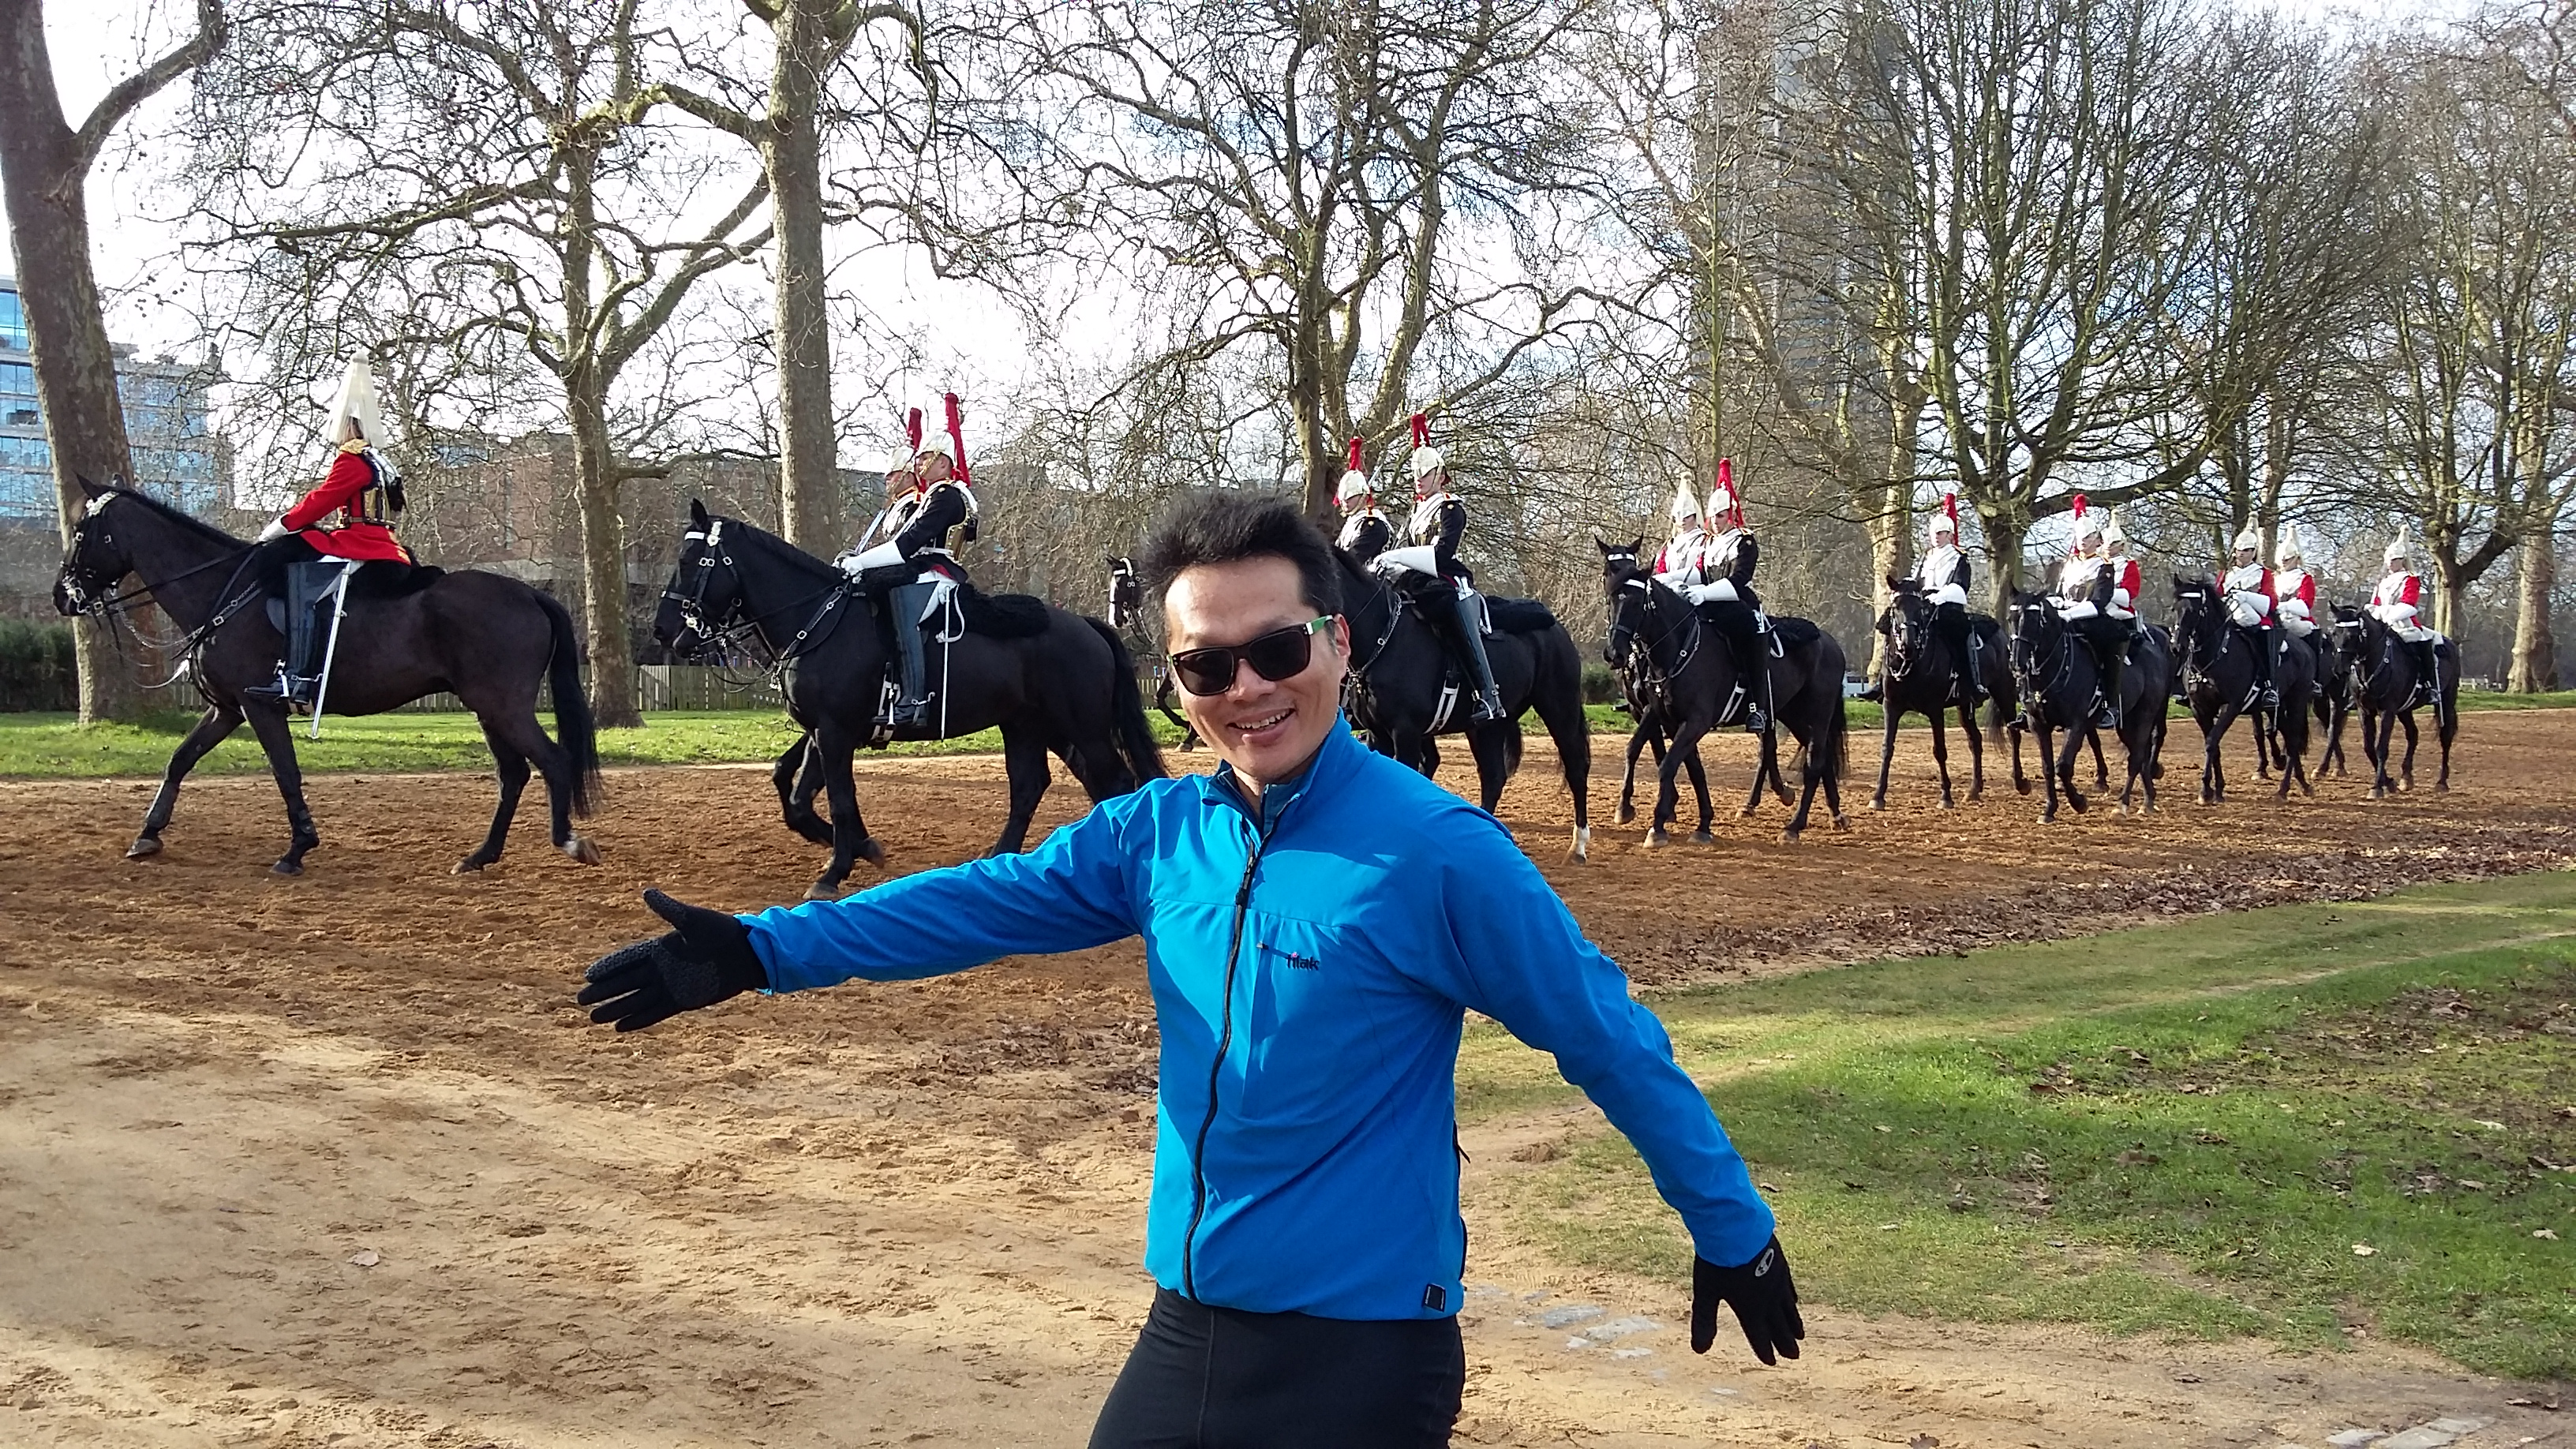 Having fun with the Horse Guards